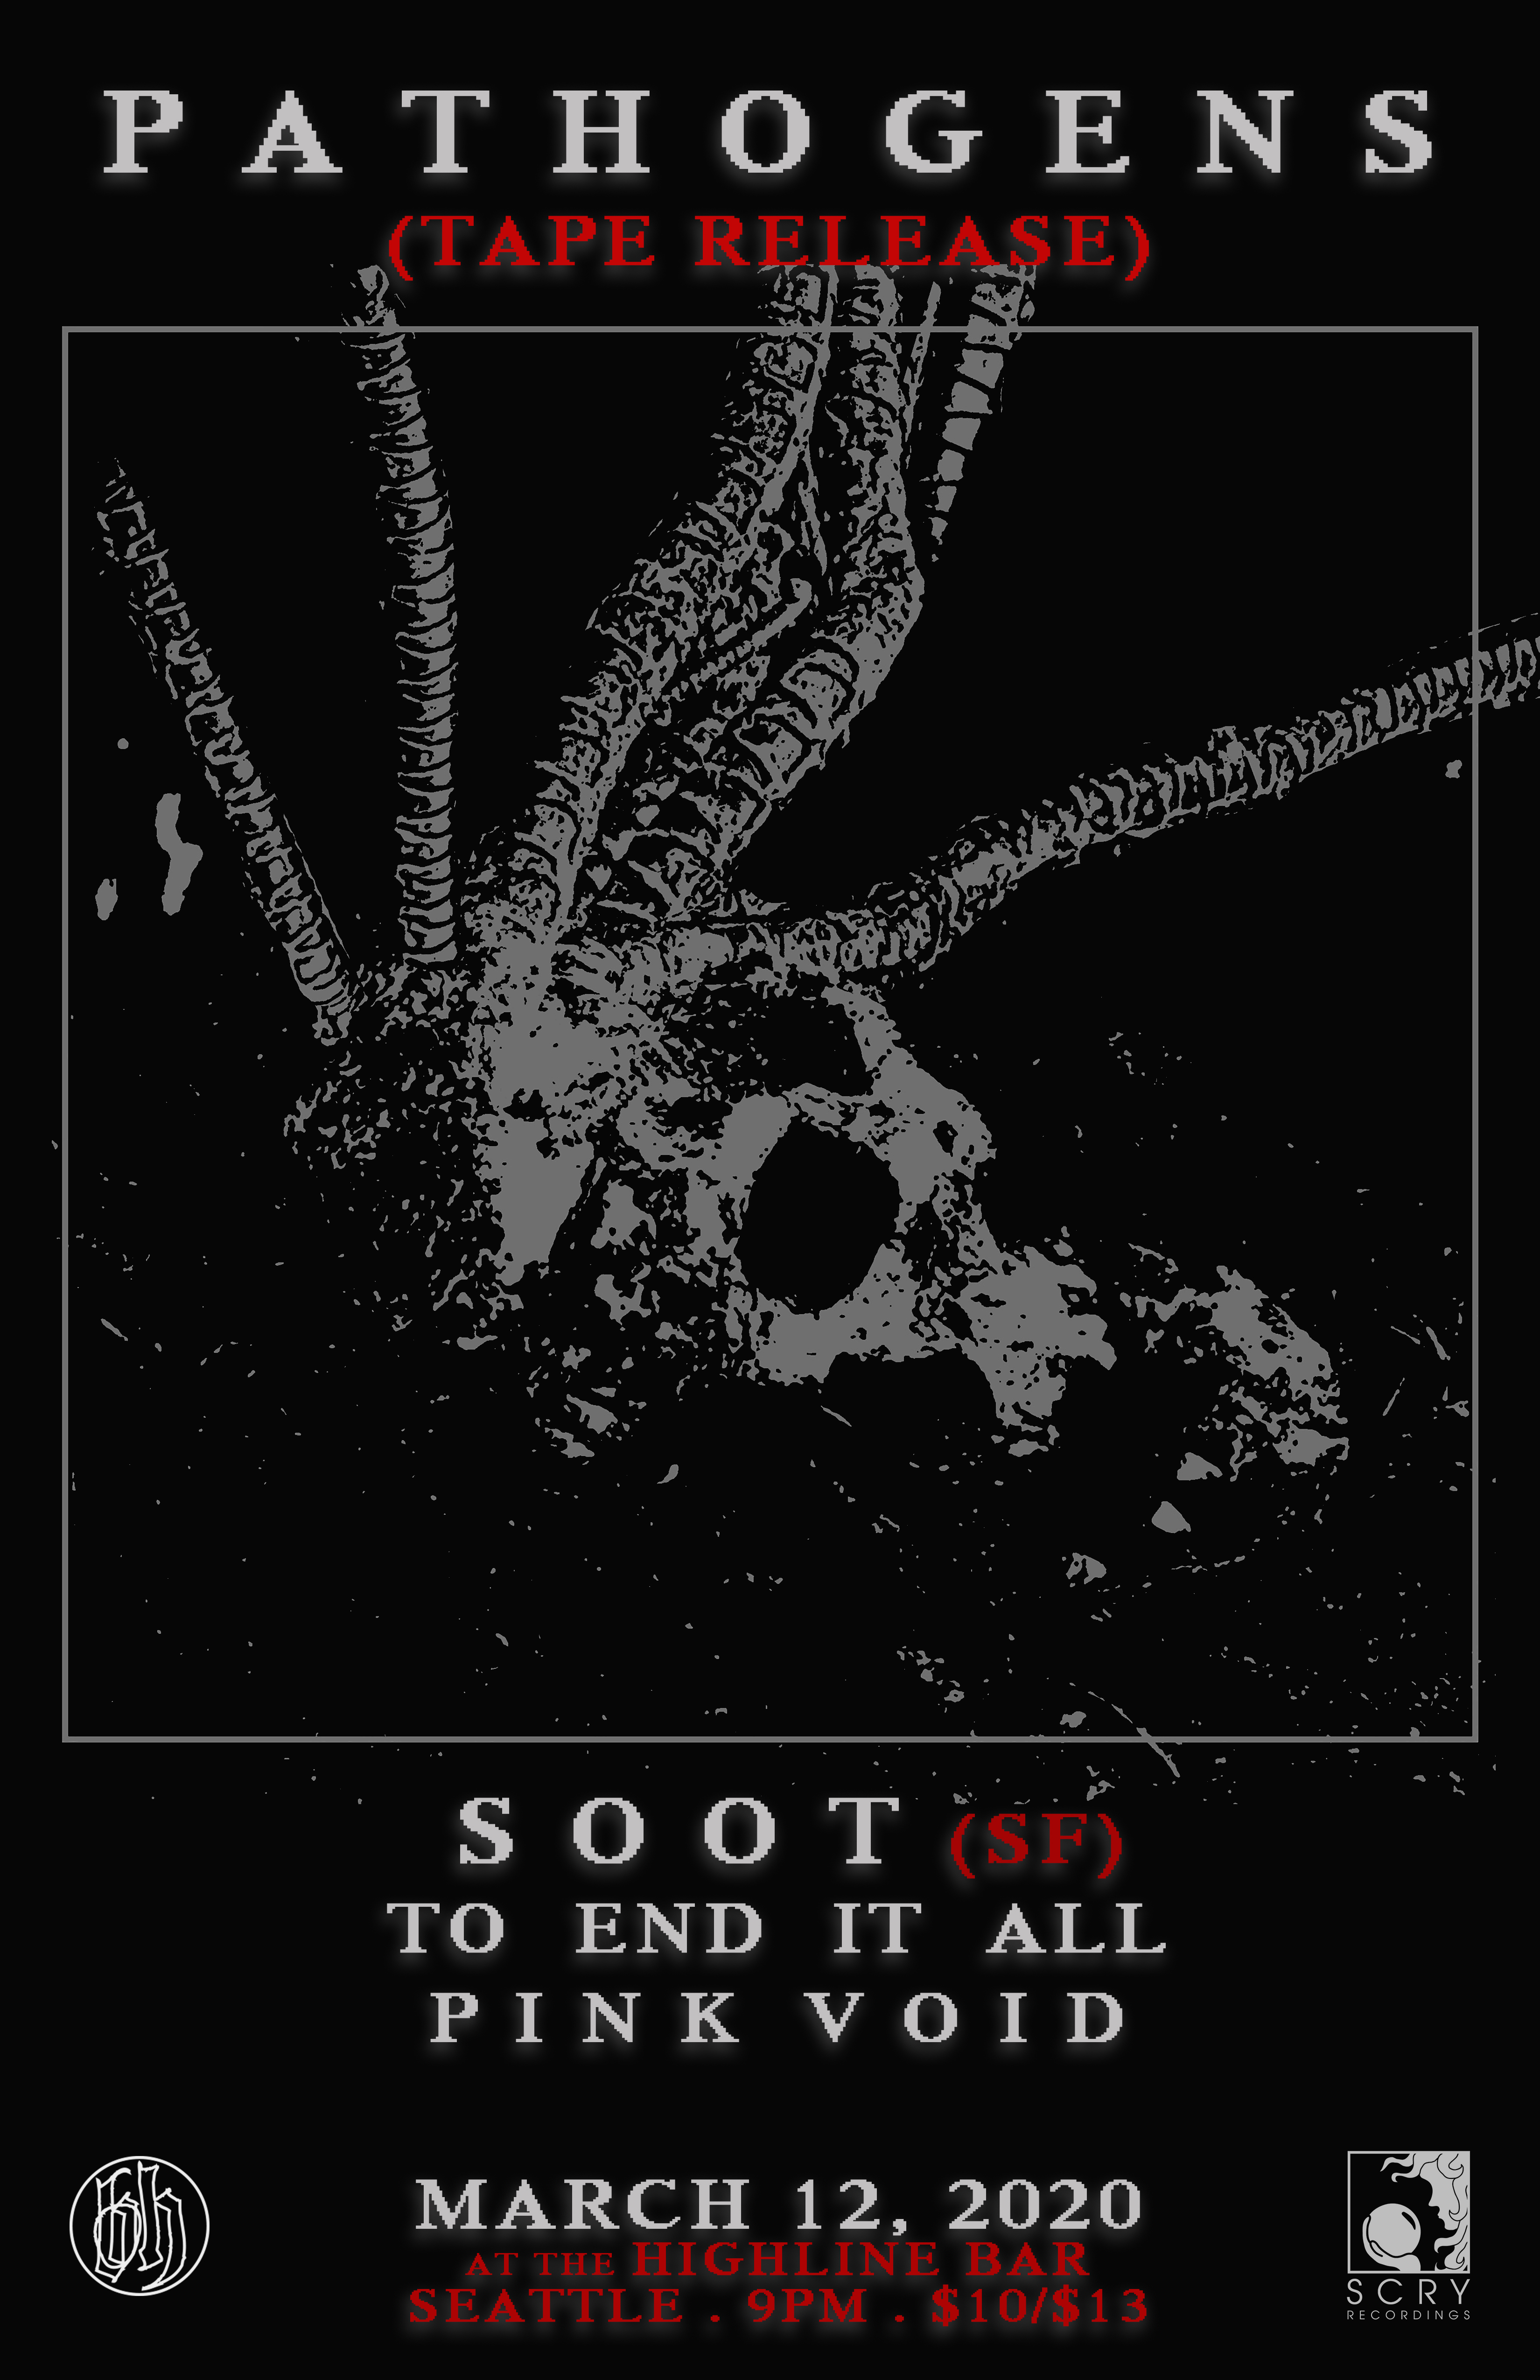 3-12-20 Pathogens tape release W/ SOOT, TO END IT ALL, PINK VOID